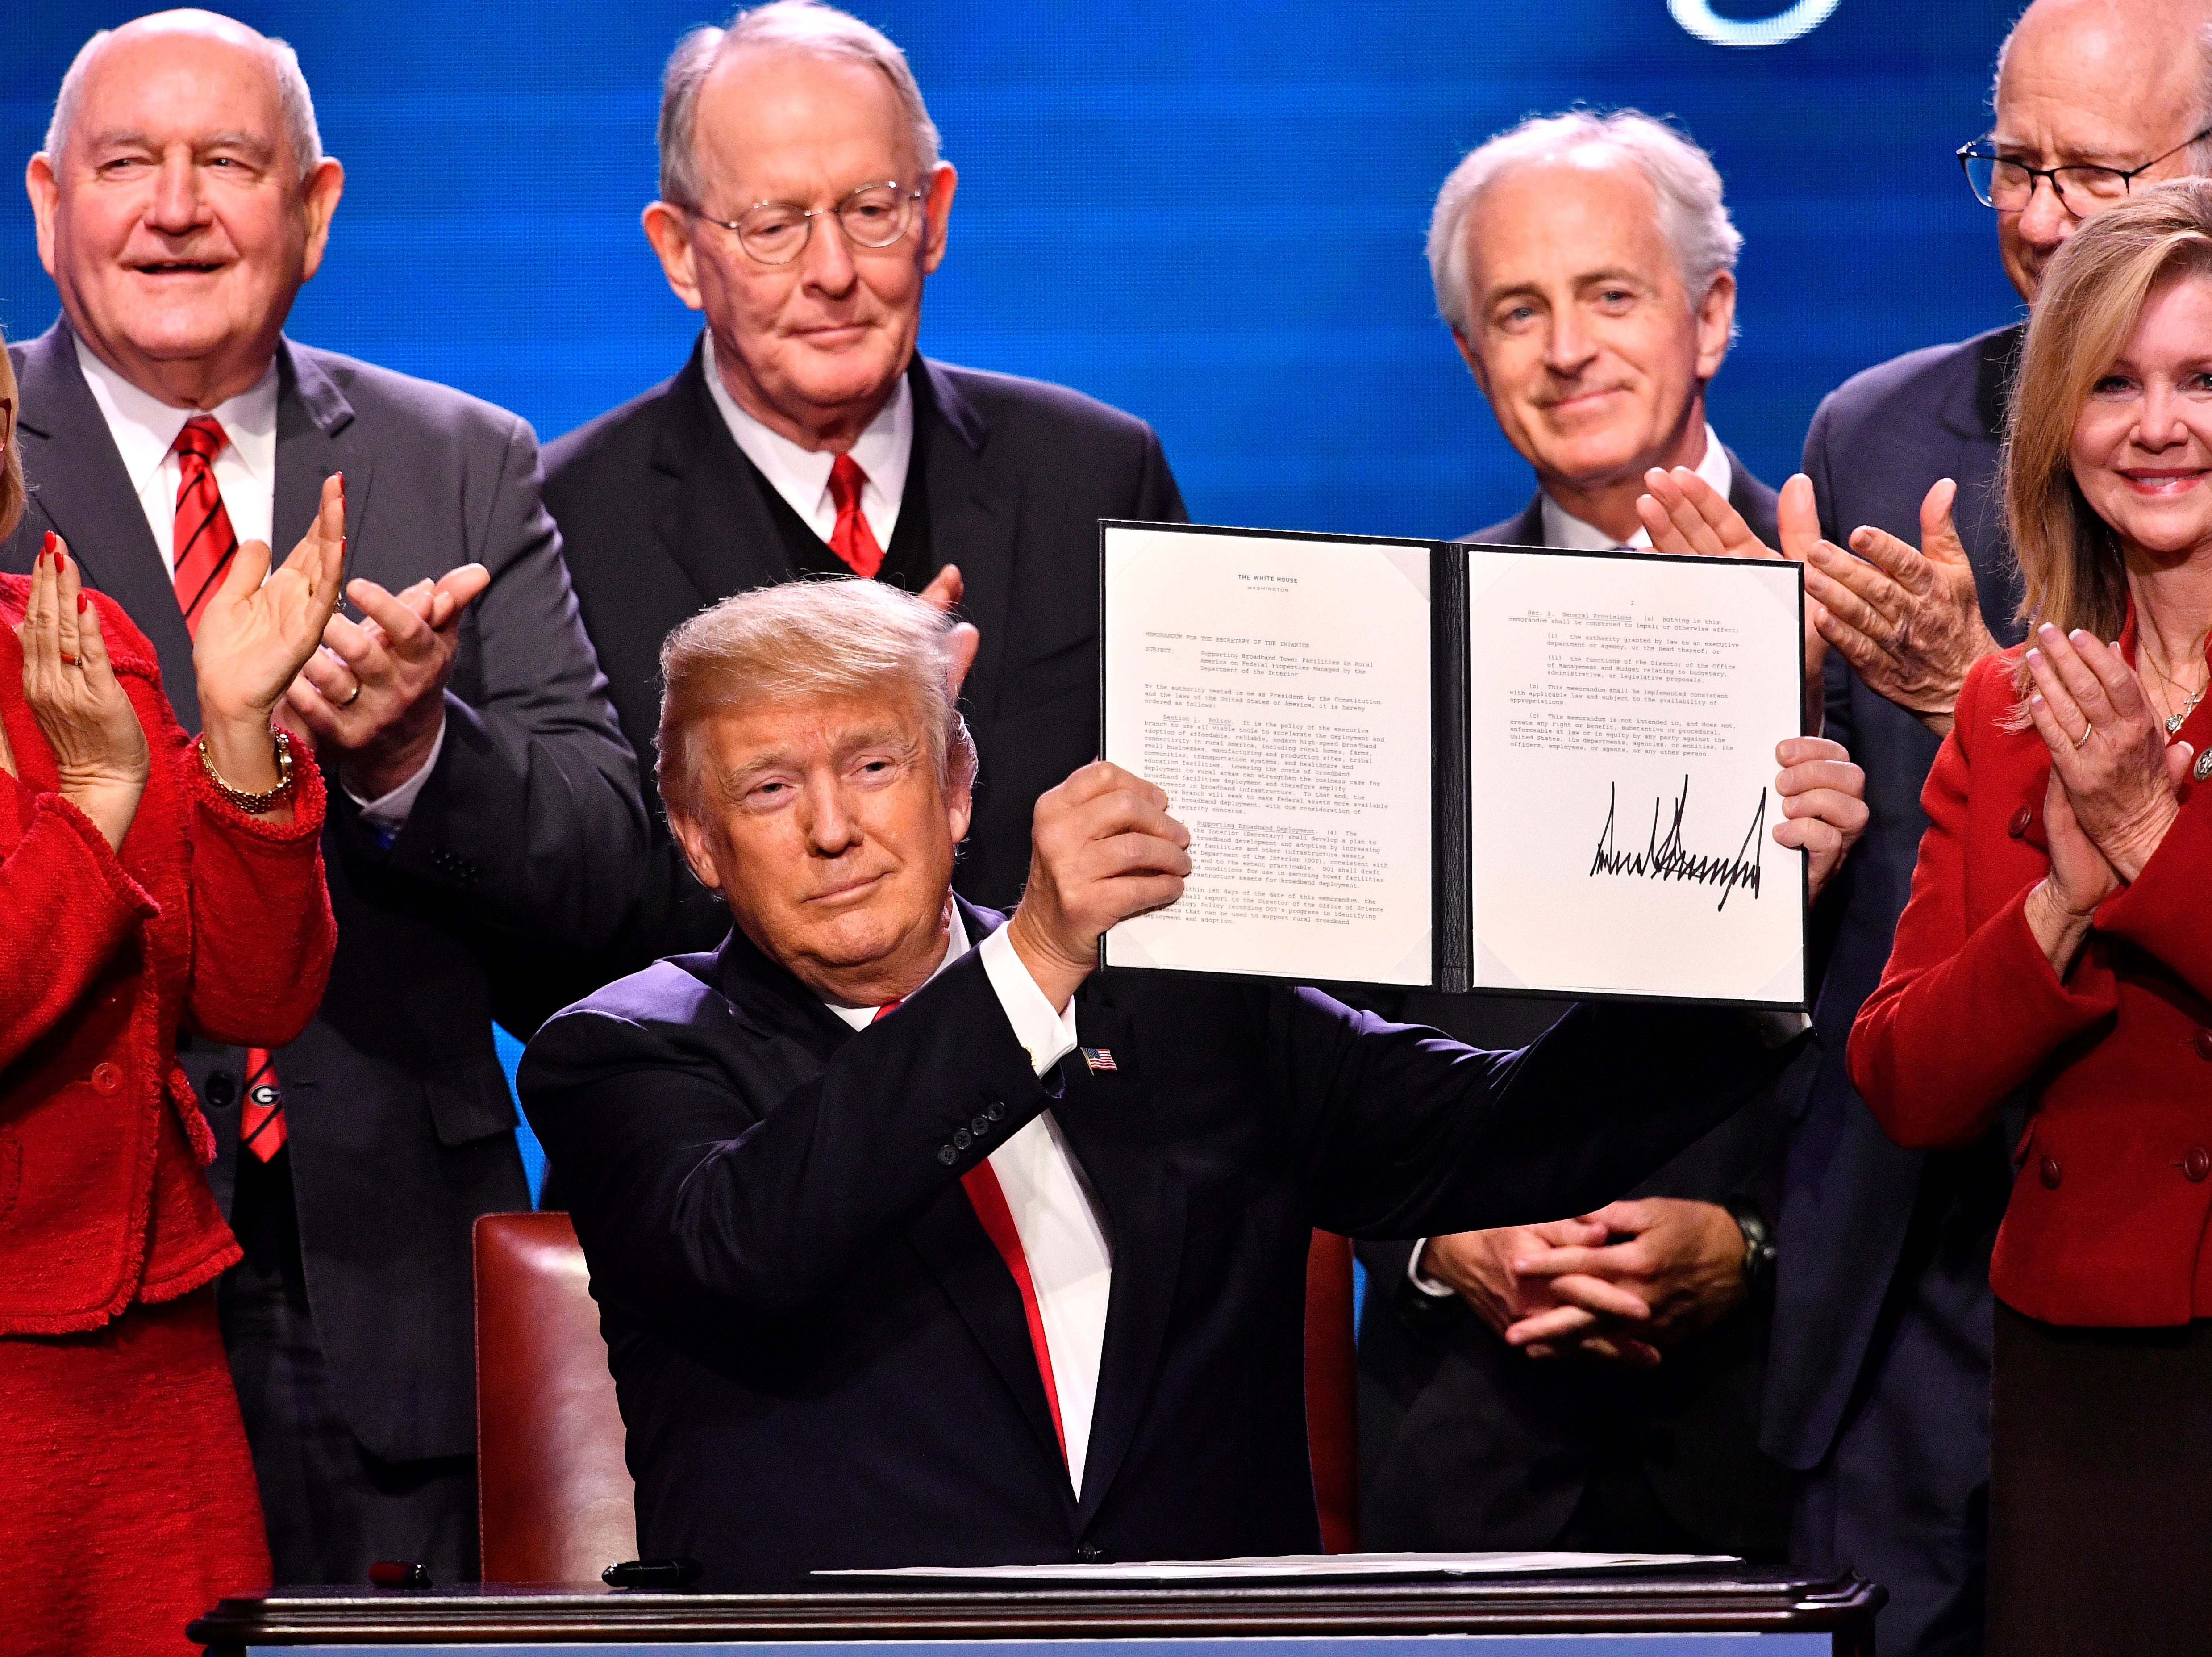 President Donald Trump holds an executive order he just signed on rural broadband flanked by Rep Diane Black, Agriculture Secretary Sonny Perdue Sen. Lamar Alexander, Sen. Bob Corker, Sen. Pat Roberts and Rep. Marsha Blackburn at Gaylord Opryland Resort & Convention Center Monday, Jan. 8, 2018 in Nashville, Tenn.